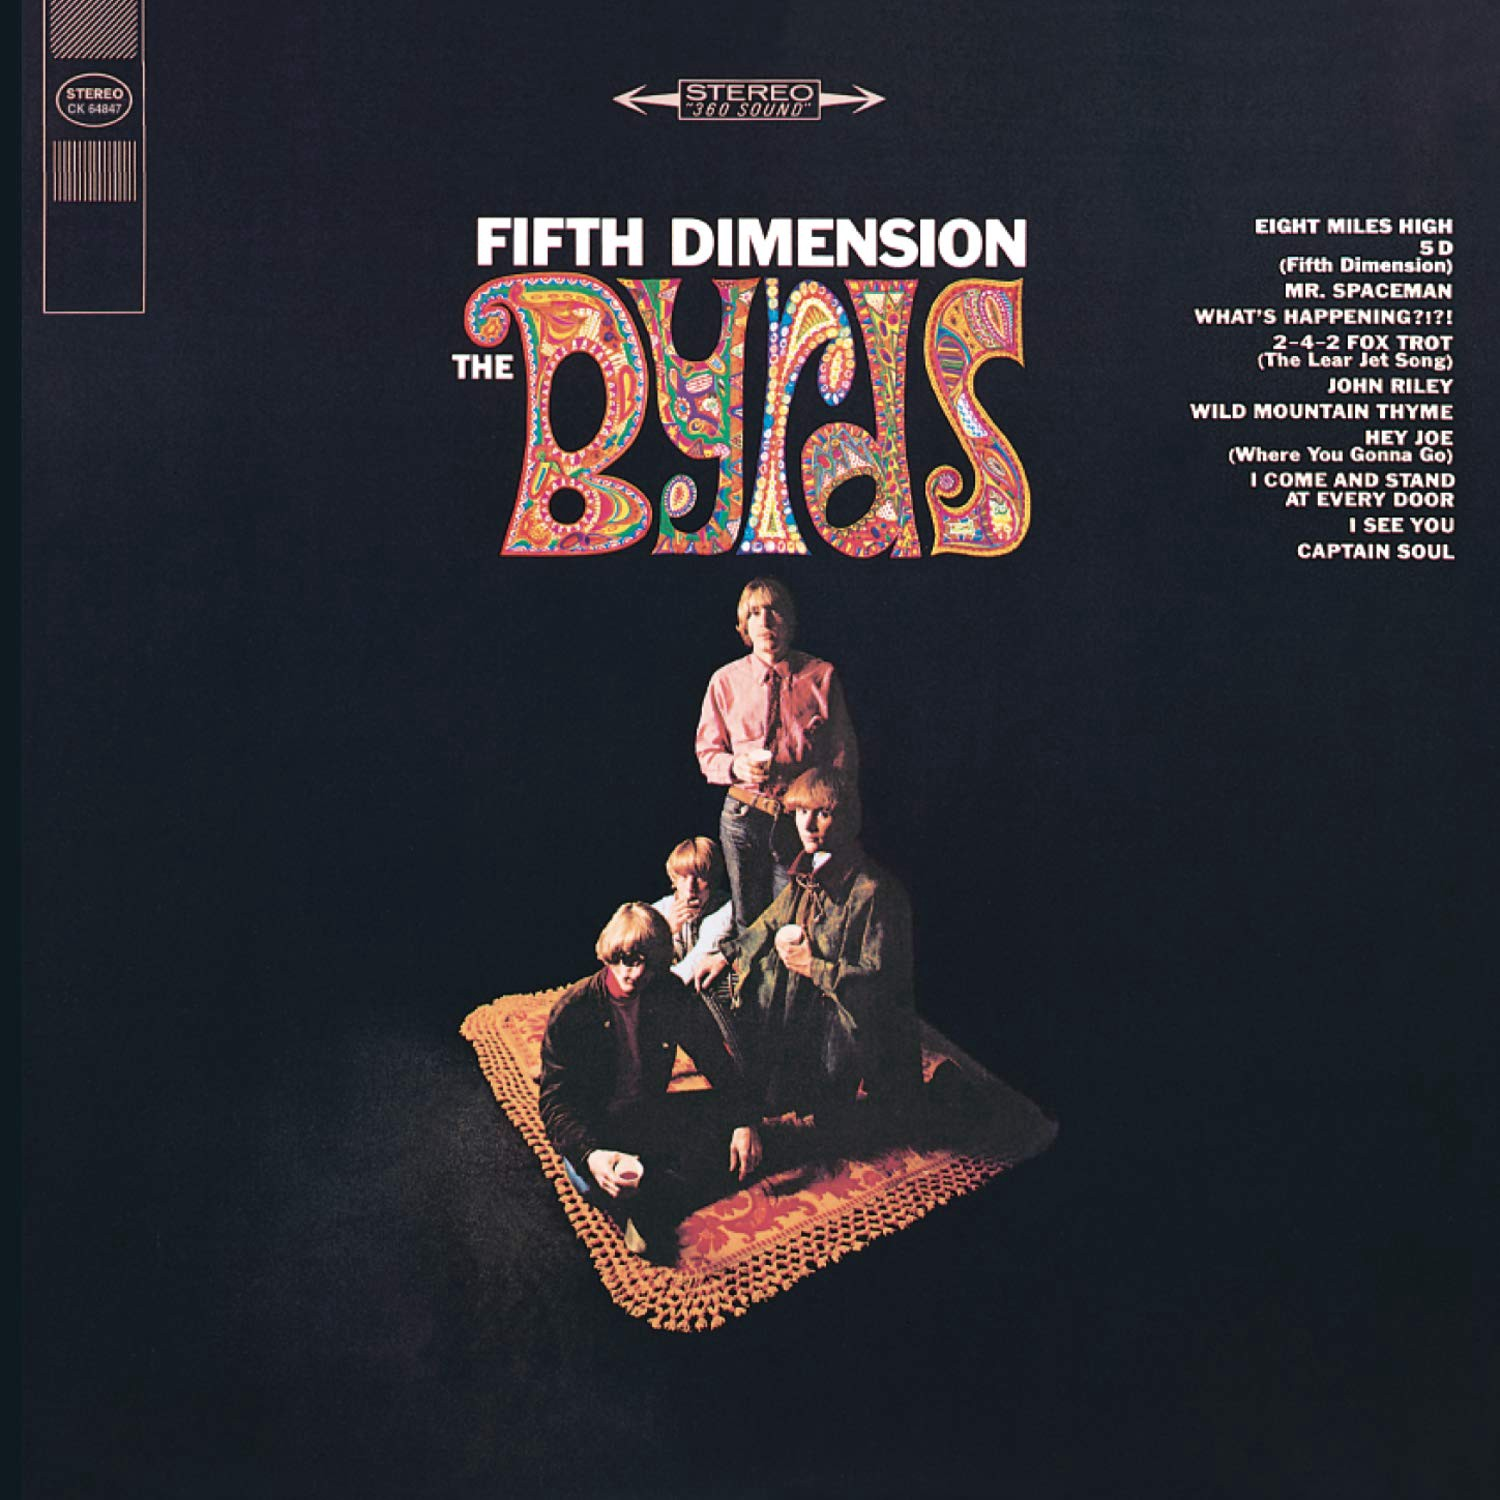 The Byrds - Fifth Dimension [LP]